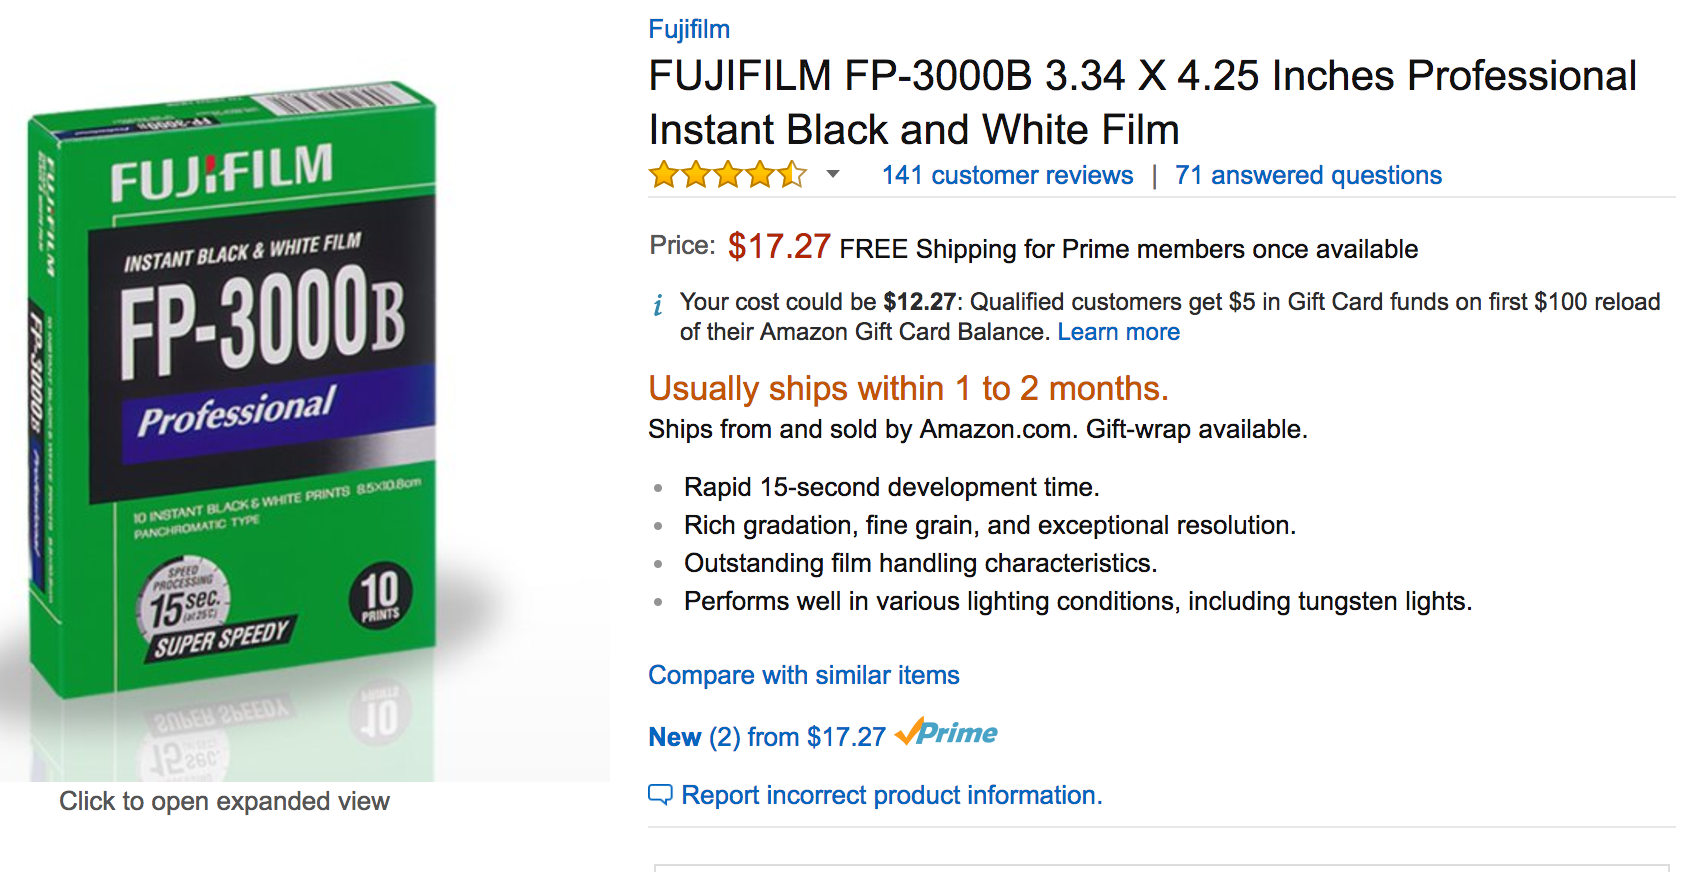 Deal Alert: Fujifilm FP-3000B Is $17.27 on Amazon Right Now